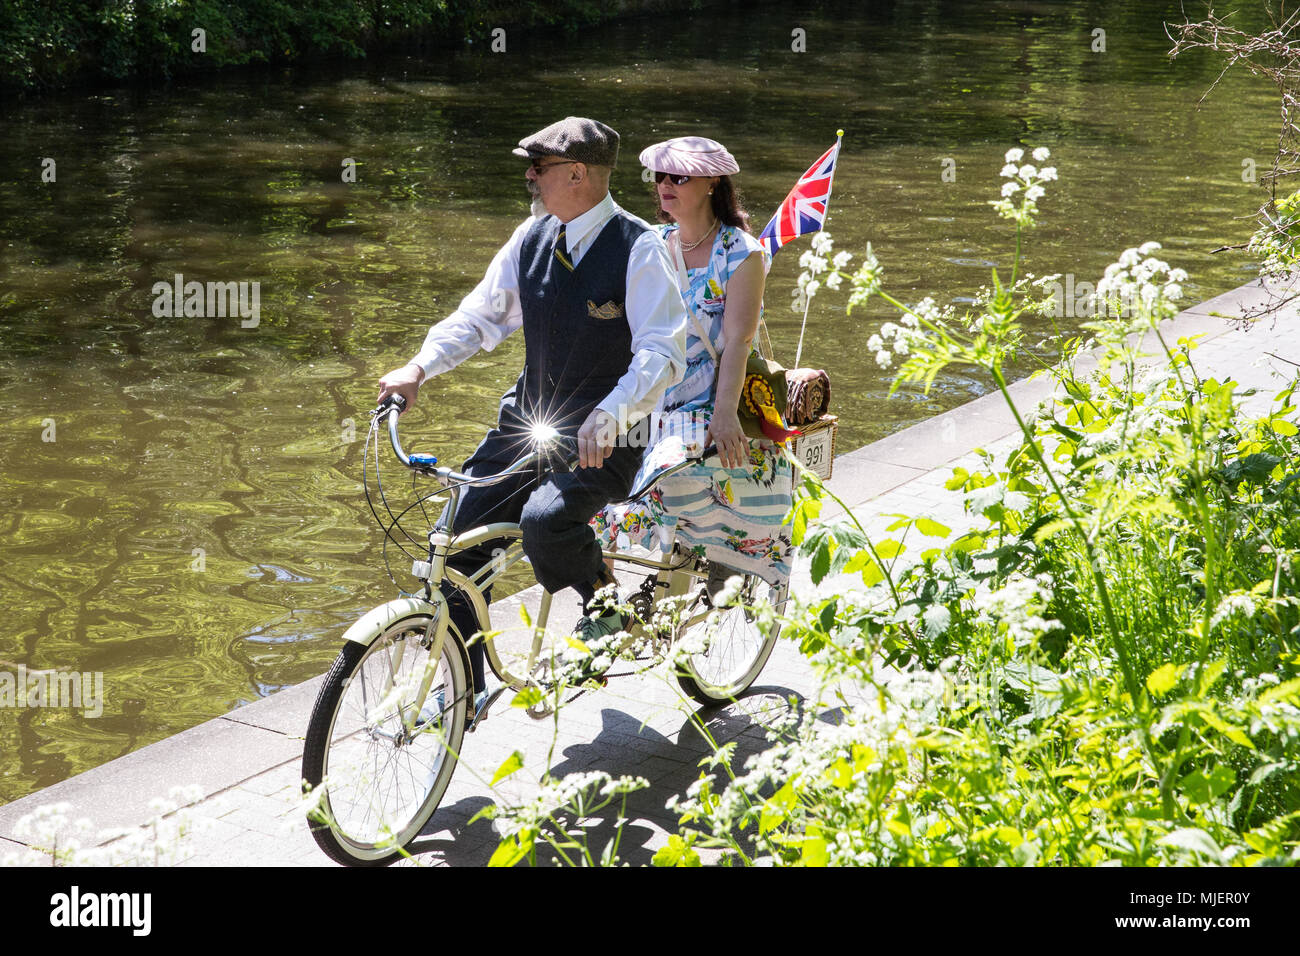 London, UK. 5th May, 2018. Over 500 cyclists wearing tweed jackets, plus twos, plus fours, flat caps, brogues and other period cycling gear ride alongside the Regent's Canal on a twelve mile route across central London on the 10th anniversary edition of the annual Tweed Run in conjunction with the Canal and River Trust. Credit: Mark Kerrison/Alamy Live News - Stock Image